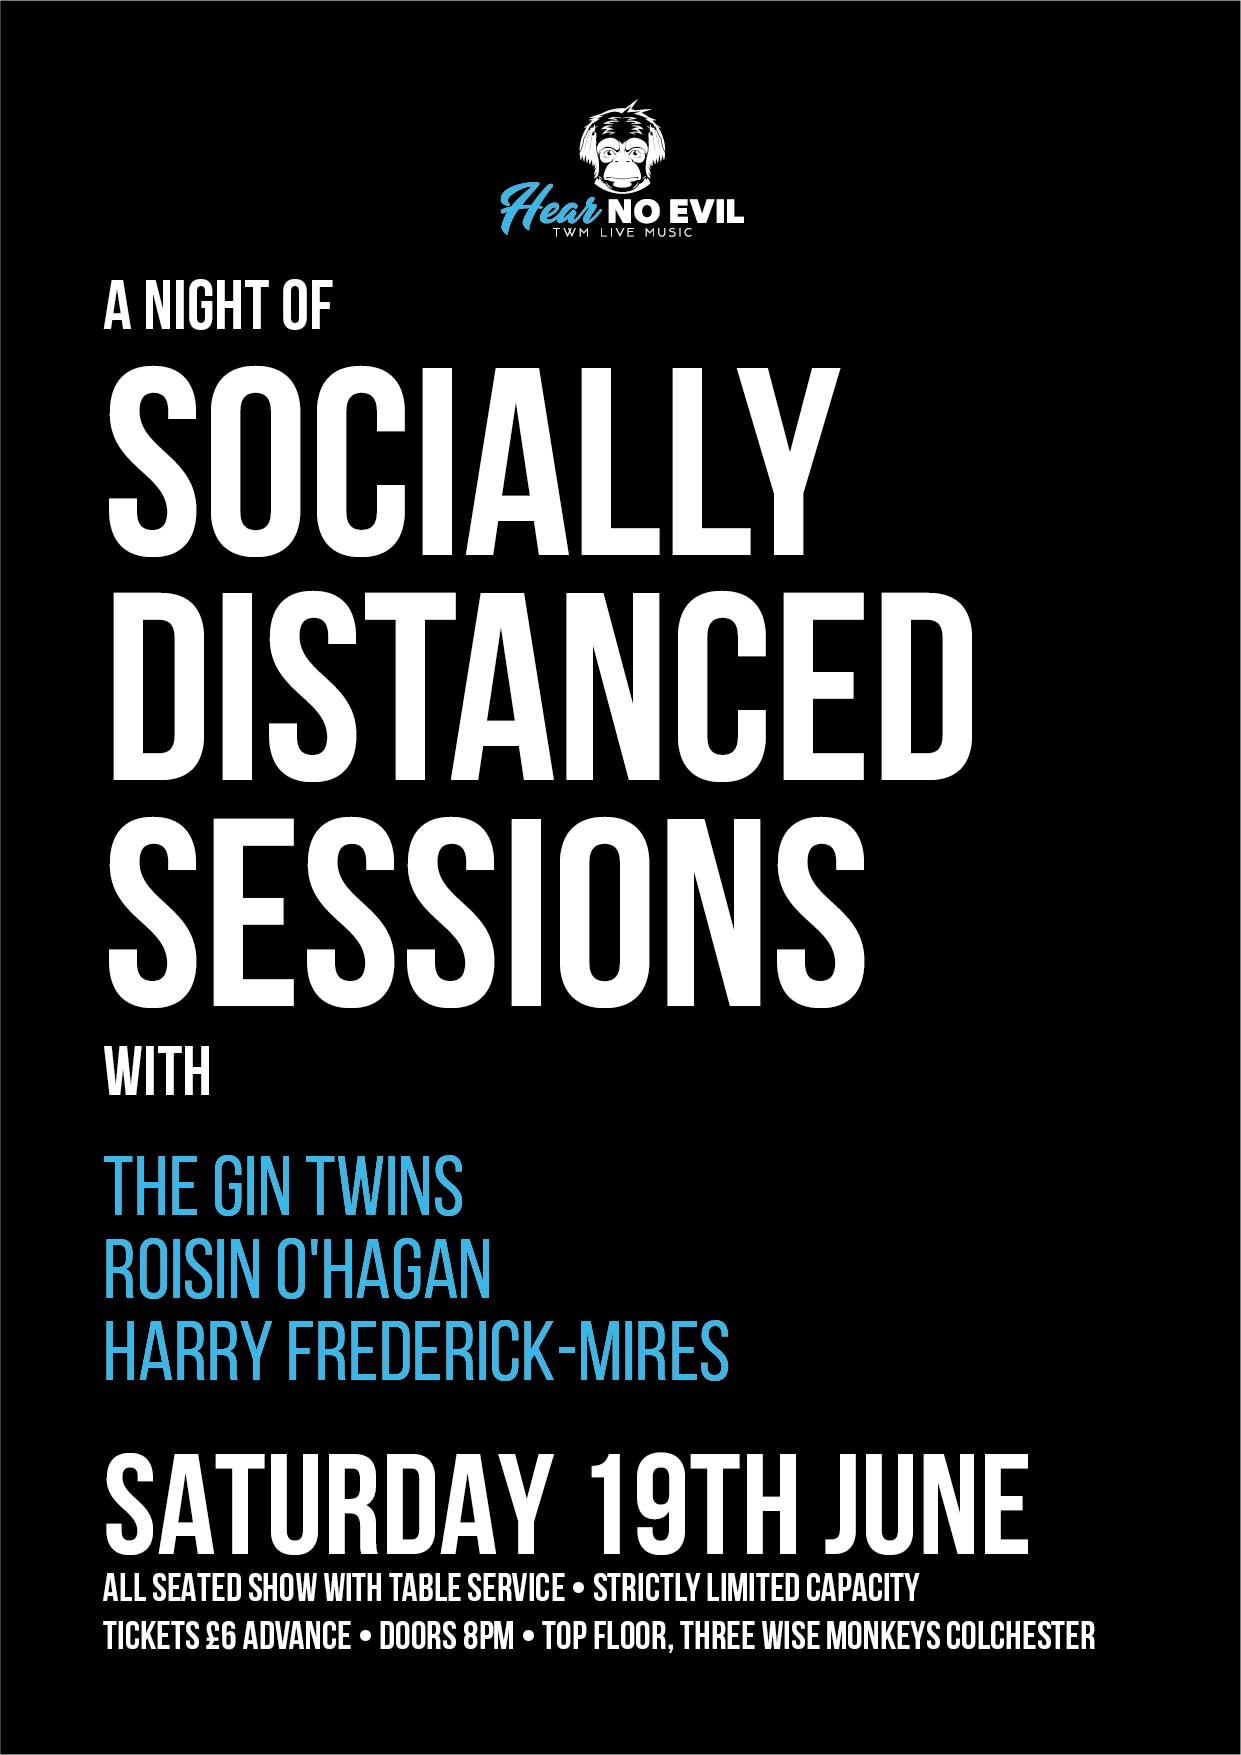 Twm Live Socially Distanced Sessions: The Gin Twins, Roisin O'hagan, Harry Frederick-mires